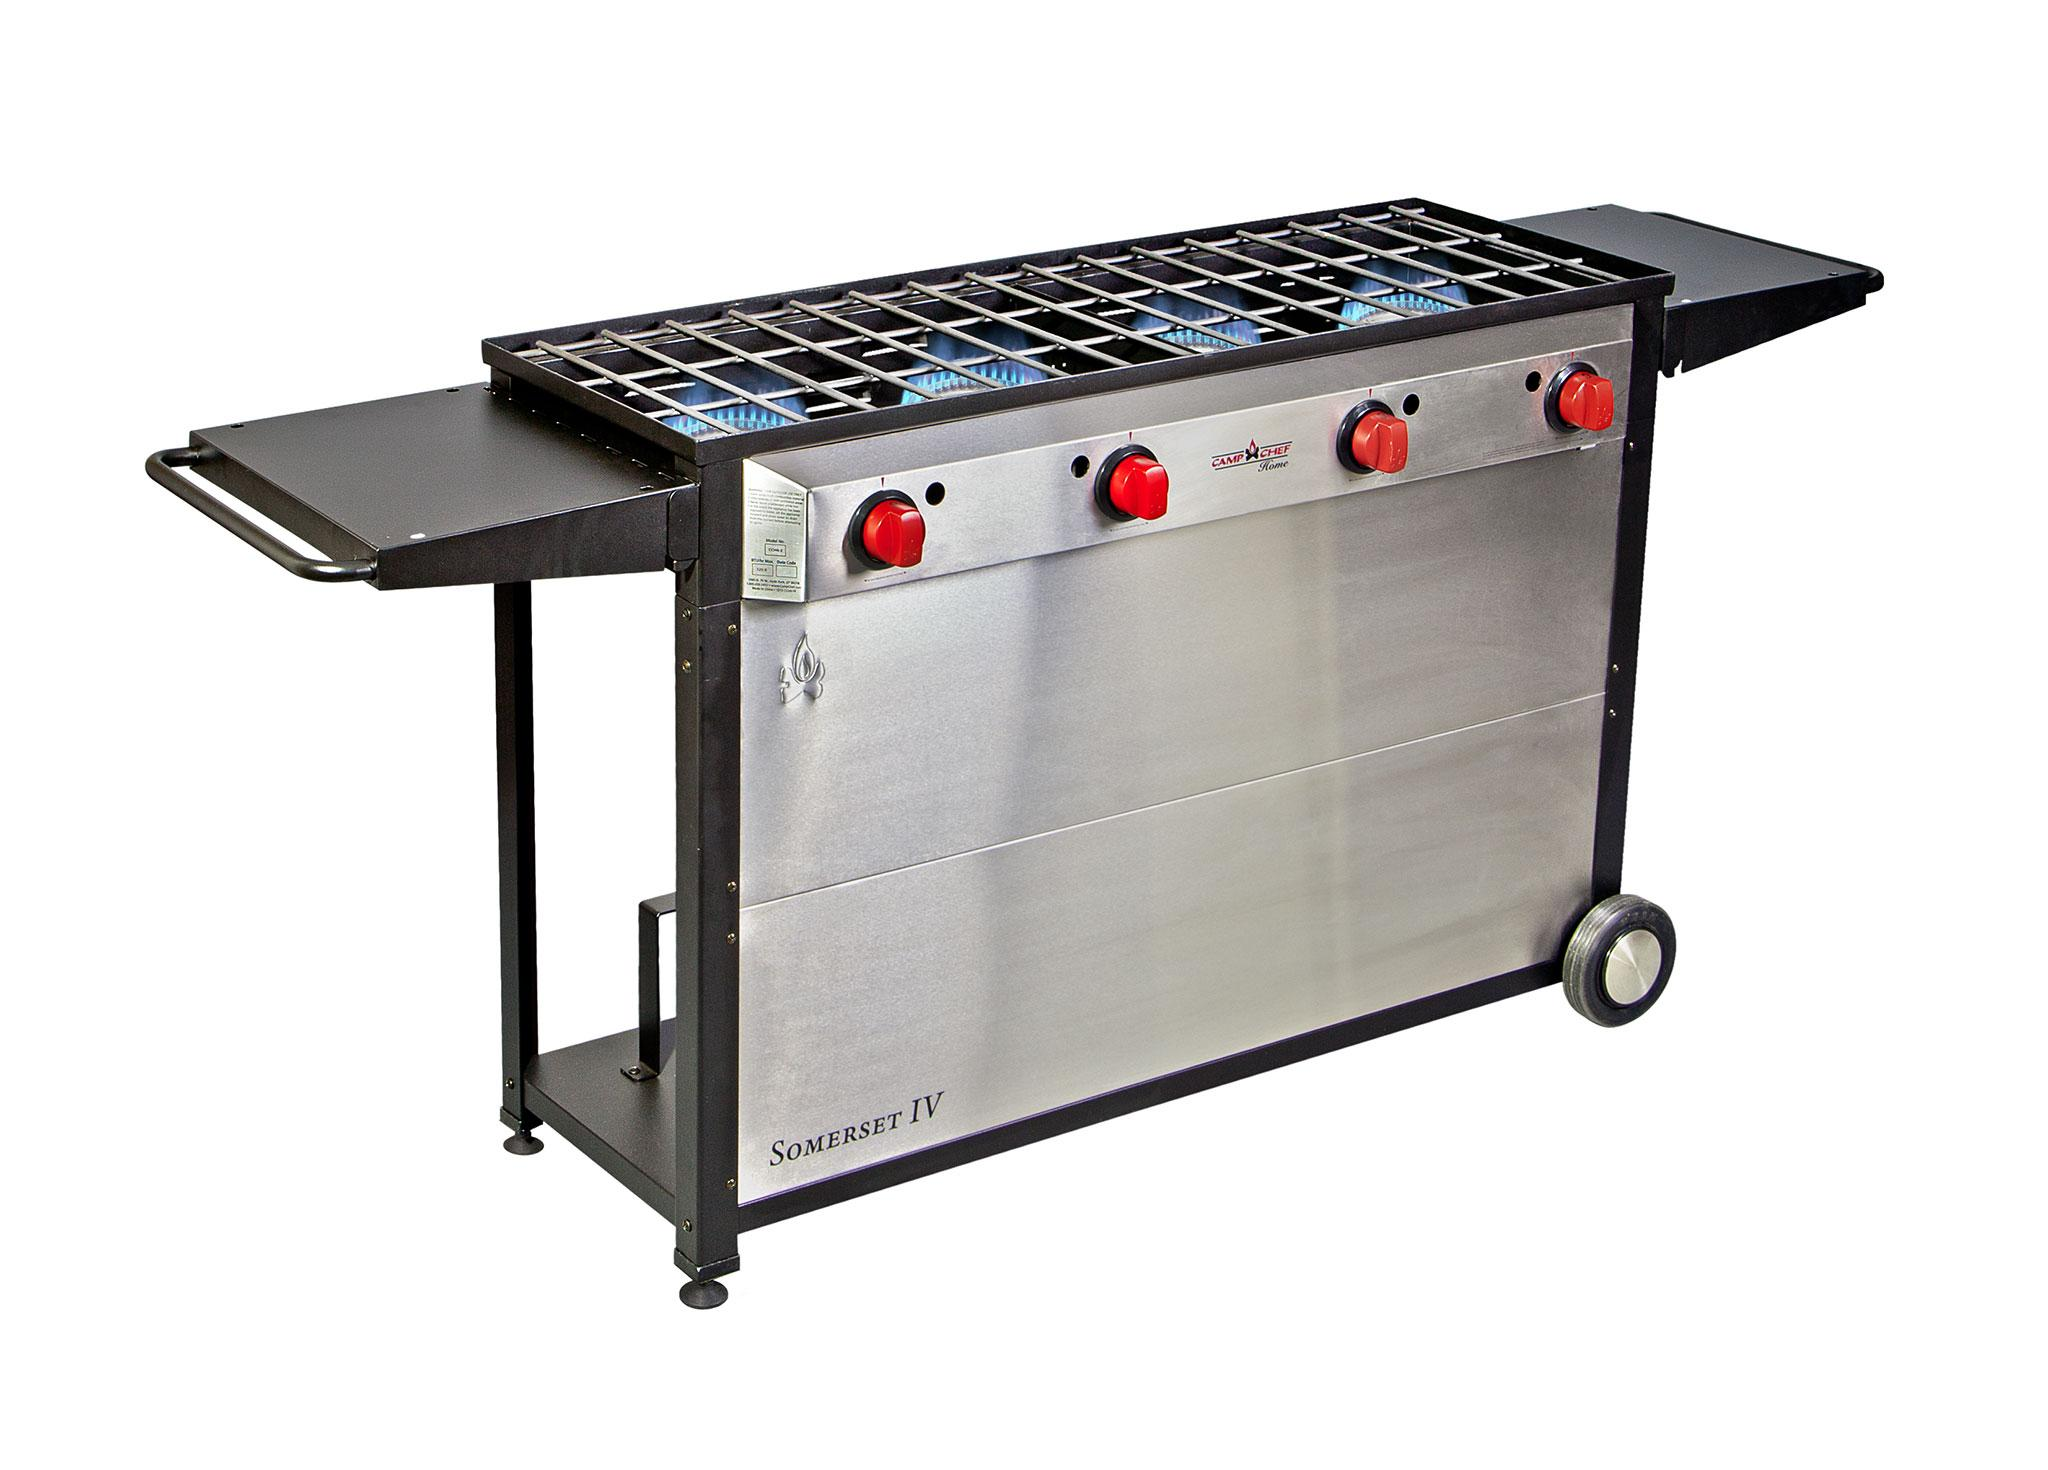 Amazon.com : Camp Chef Somerset 4- Burner BBQ Cart, Catering, Family ...